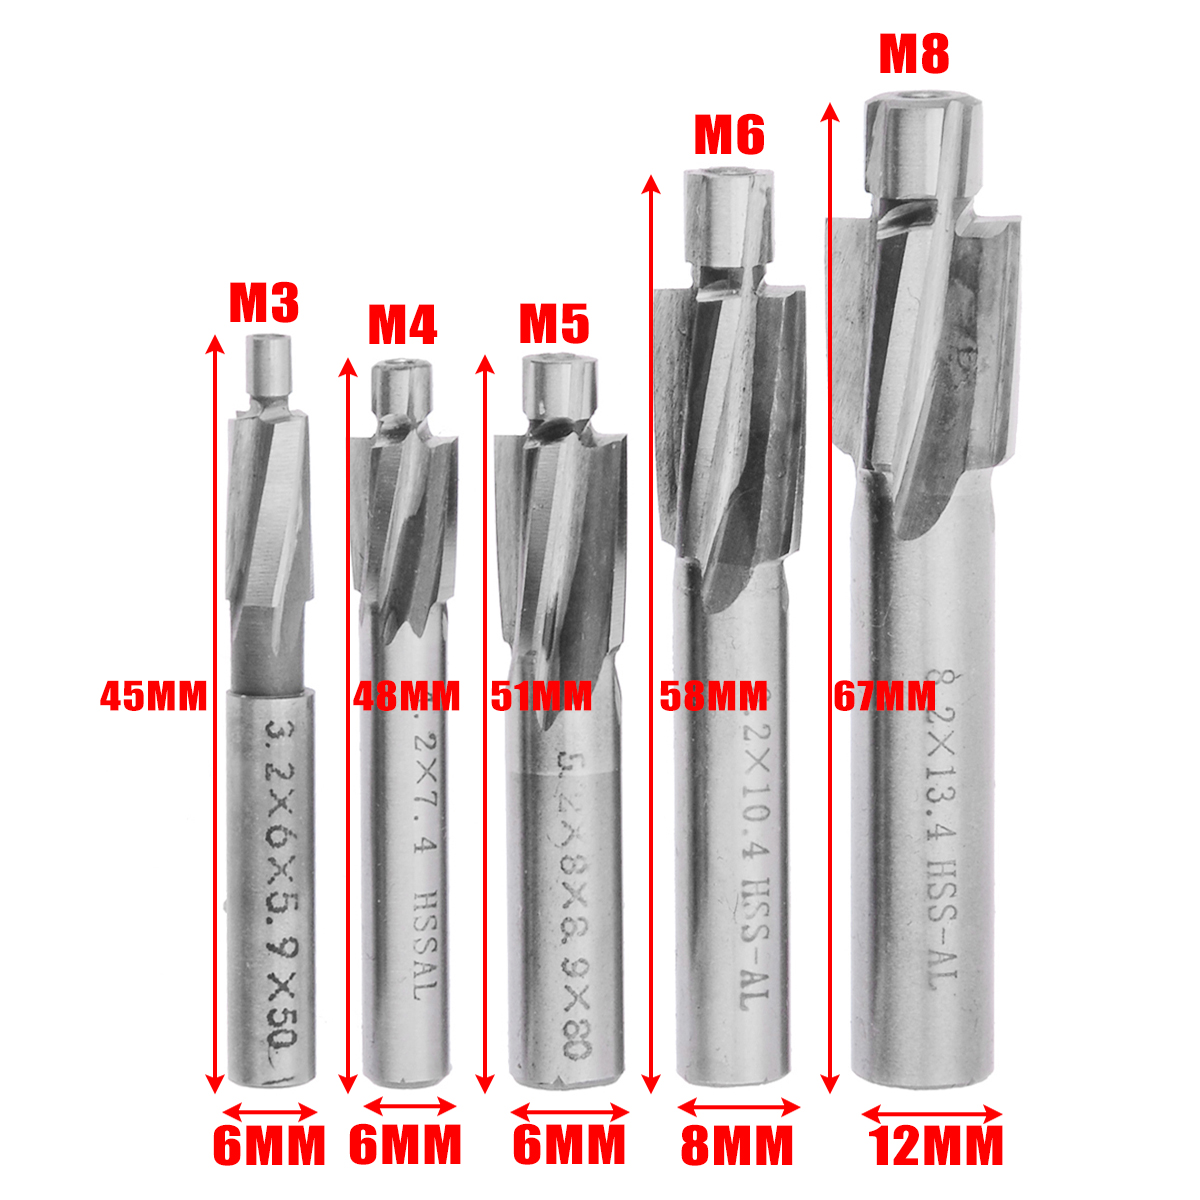 1//2-20 Size Plug Type High-Speed Steel Morse Cutting Tools 82861 Maintenance Series Spiral Point Taps Bright Finish 3 Flutes H3 Pitch Diameter